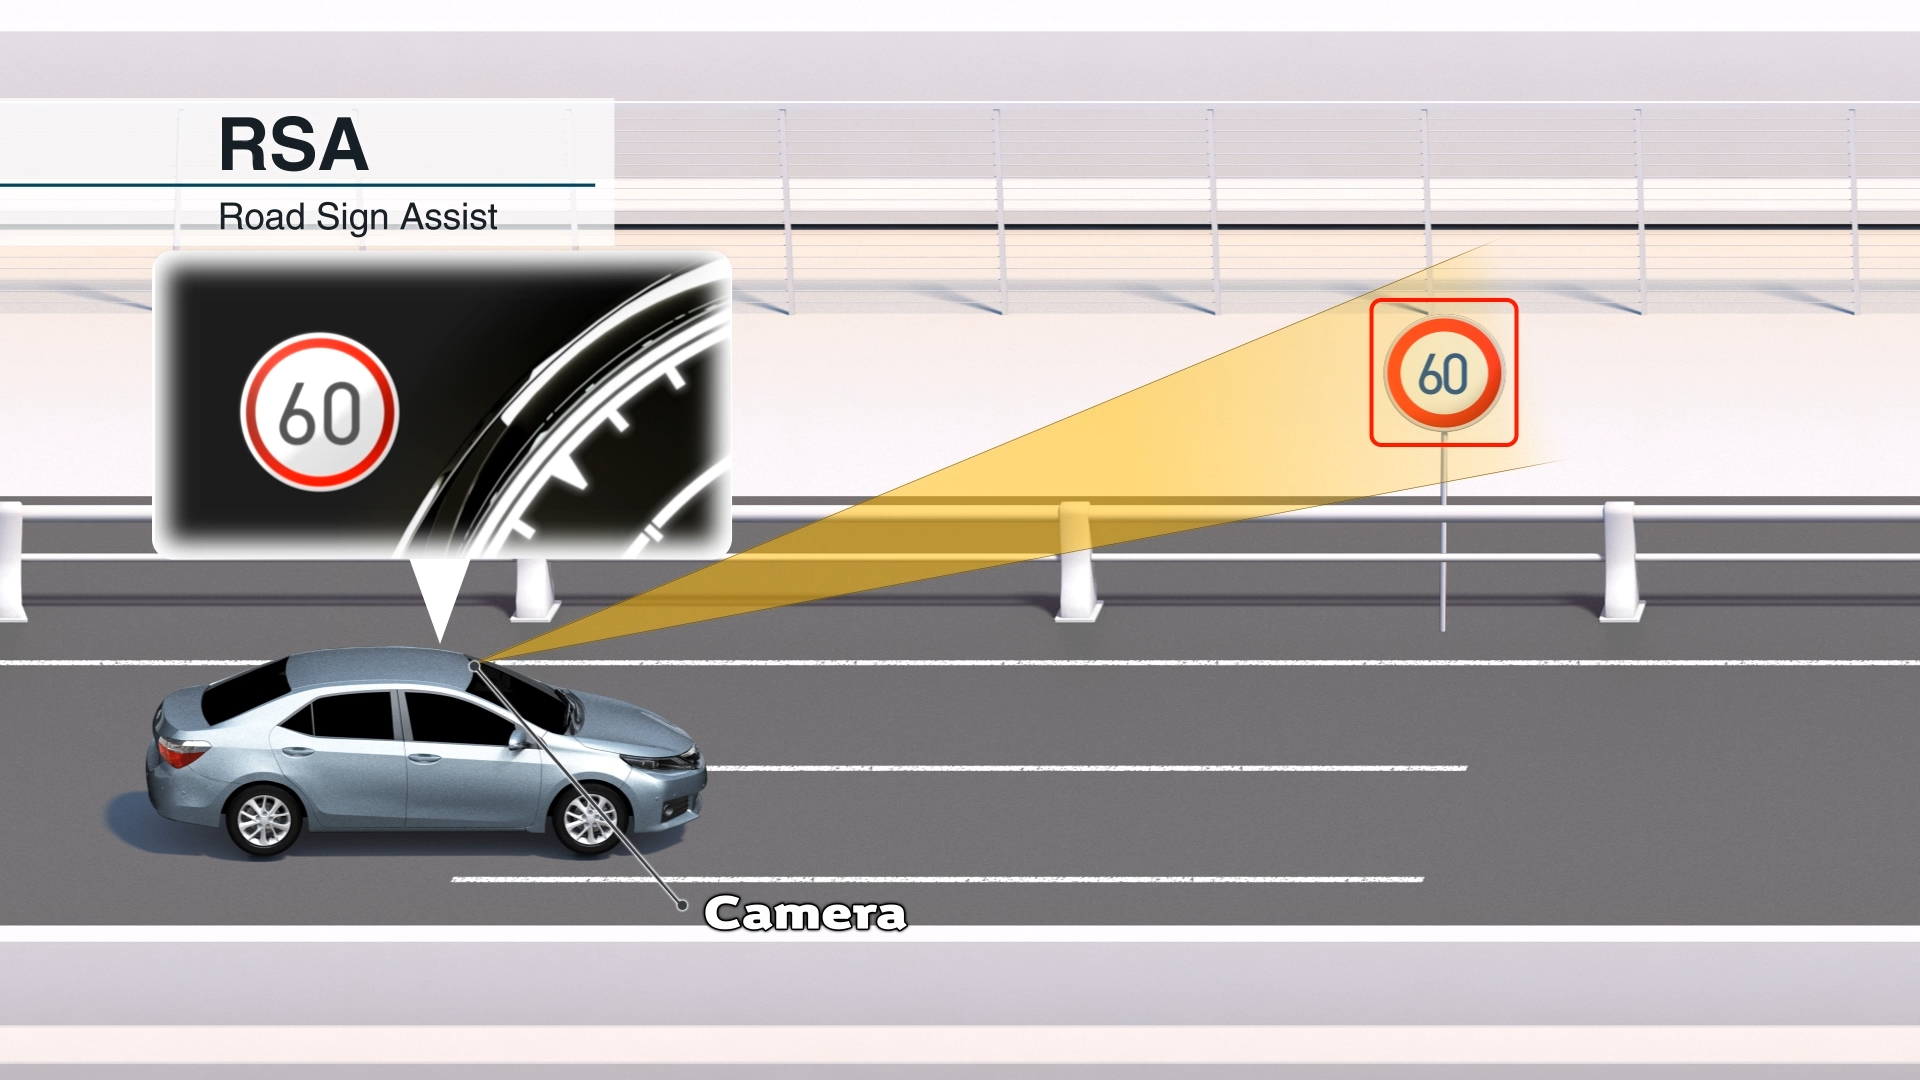 2018 Toyota Safety Sense Road Sign Assist en